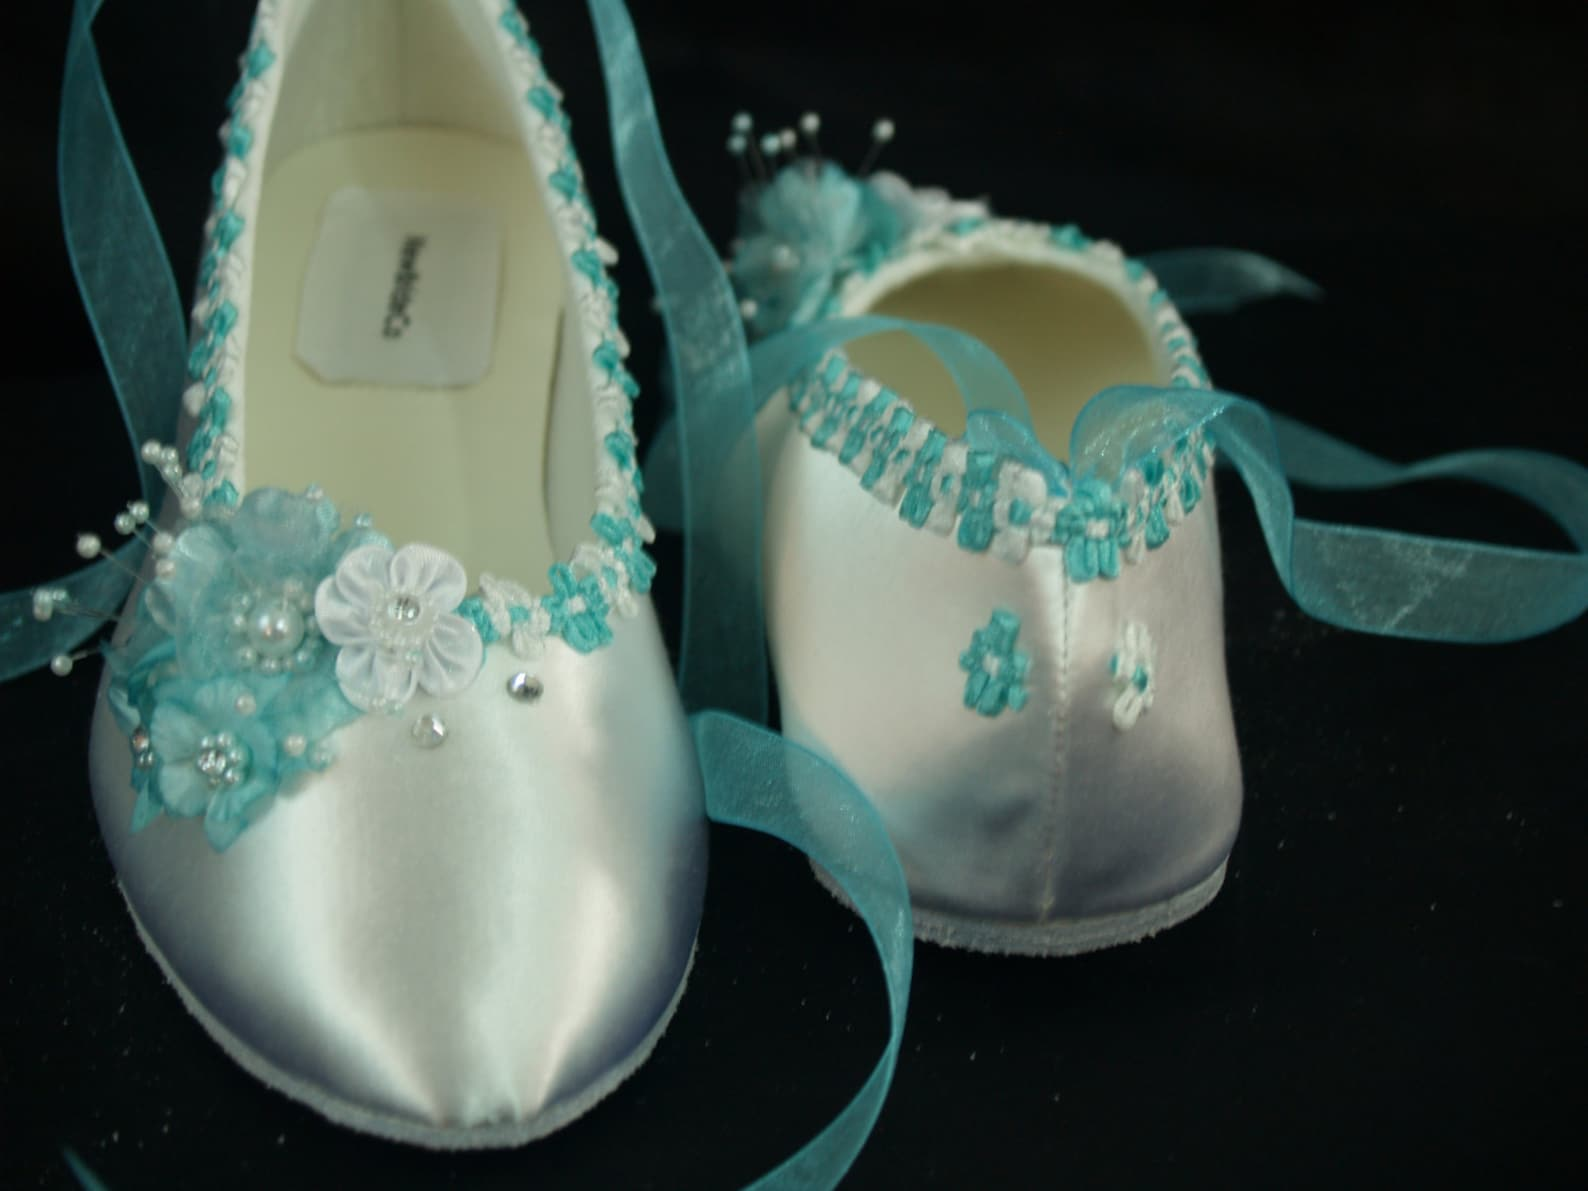 flat shoes aqua blue trims on ballet style slipper - aqua blue flat shoes, white satin flats, ribbon lace up flats, something bl